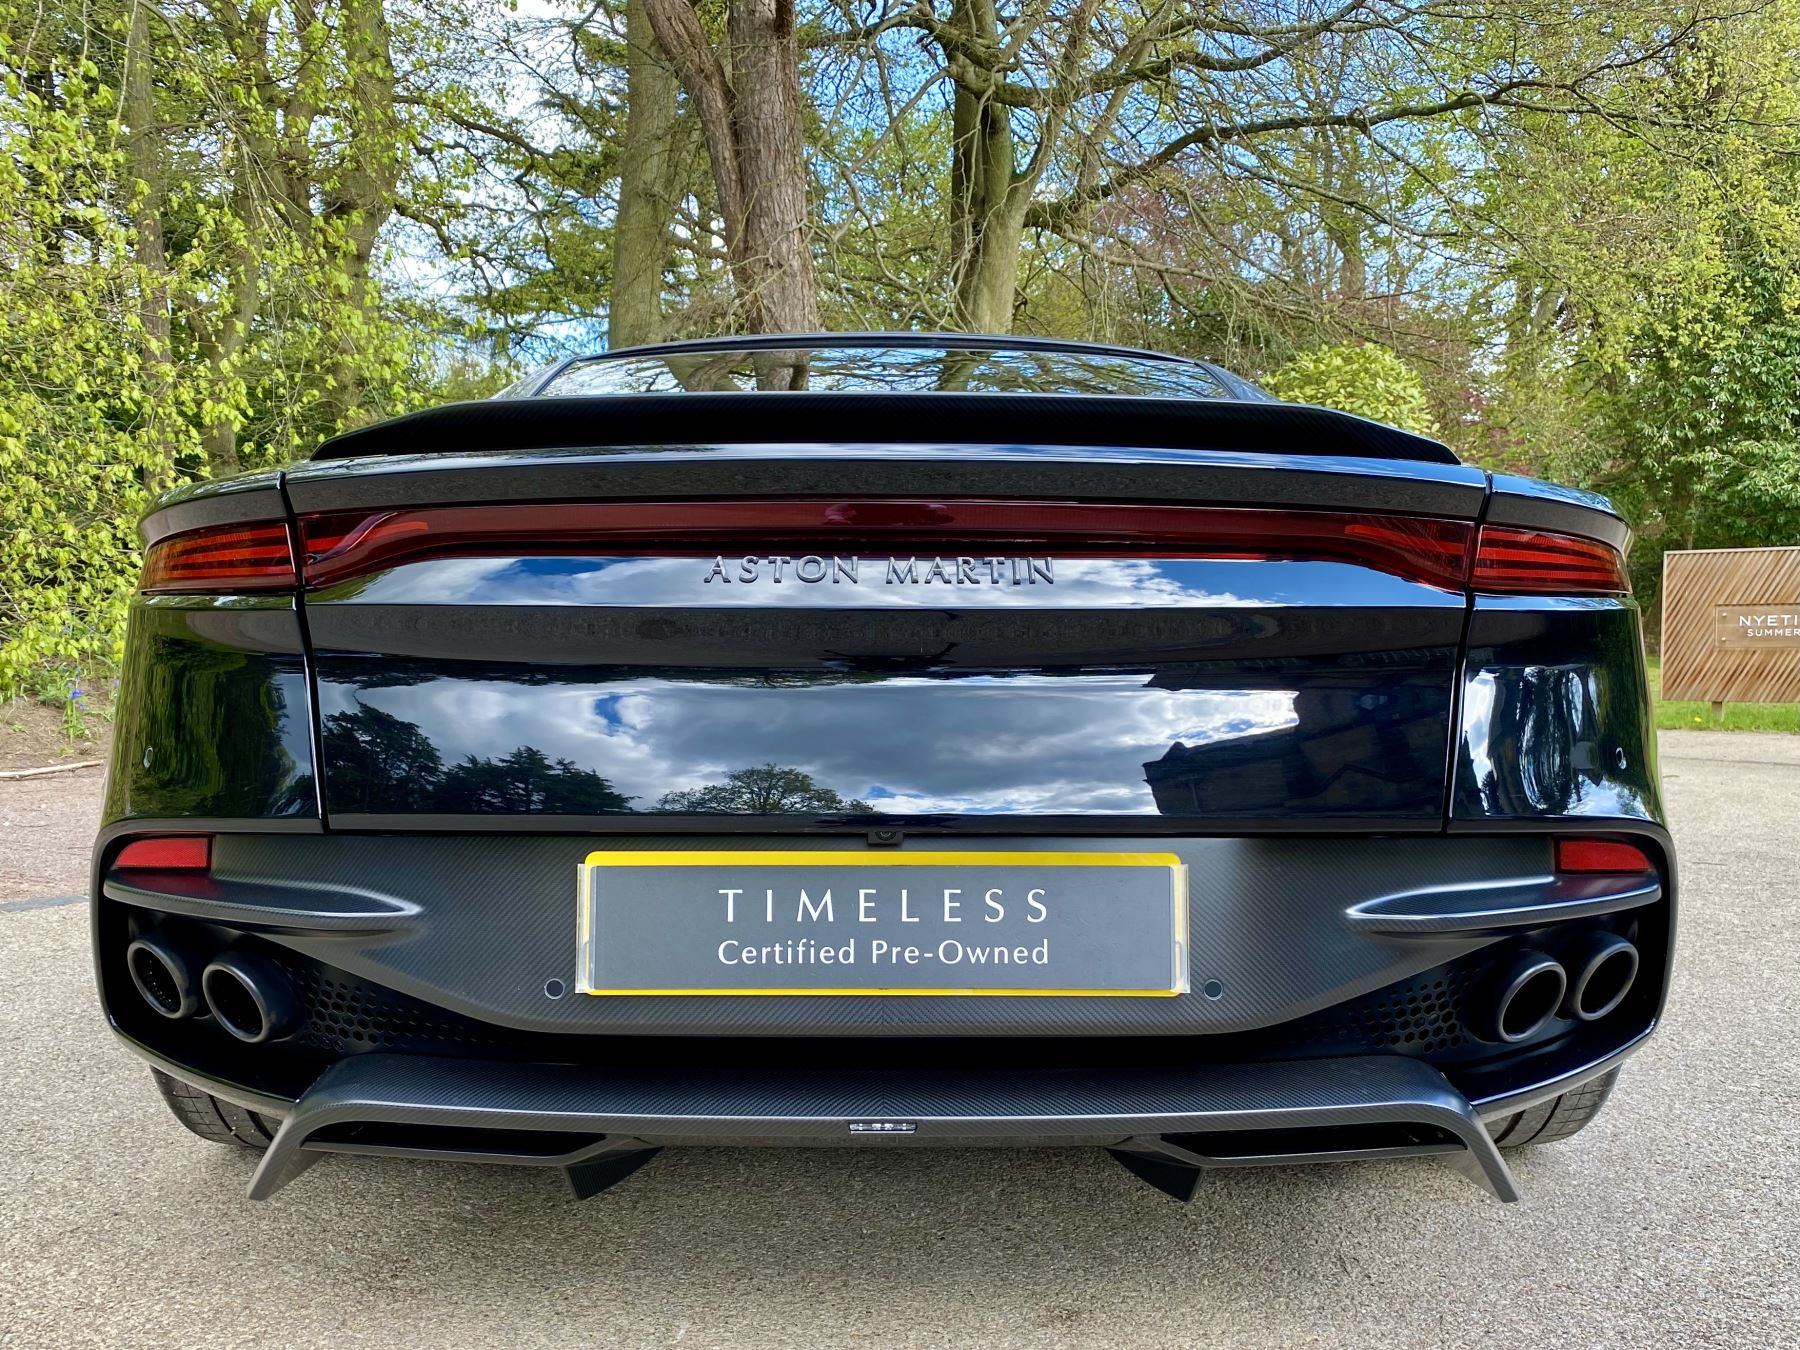 Aston Martin DBS V12 Superleggera 2dr Touchtronic Tag Edition  1 of 50 produced worldwide  image 6